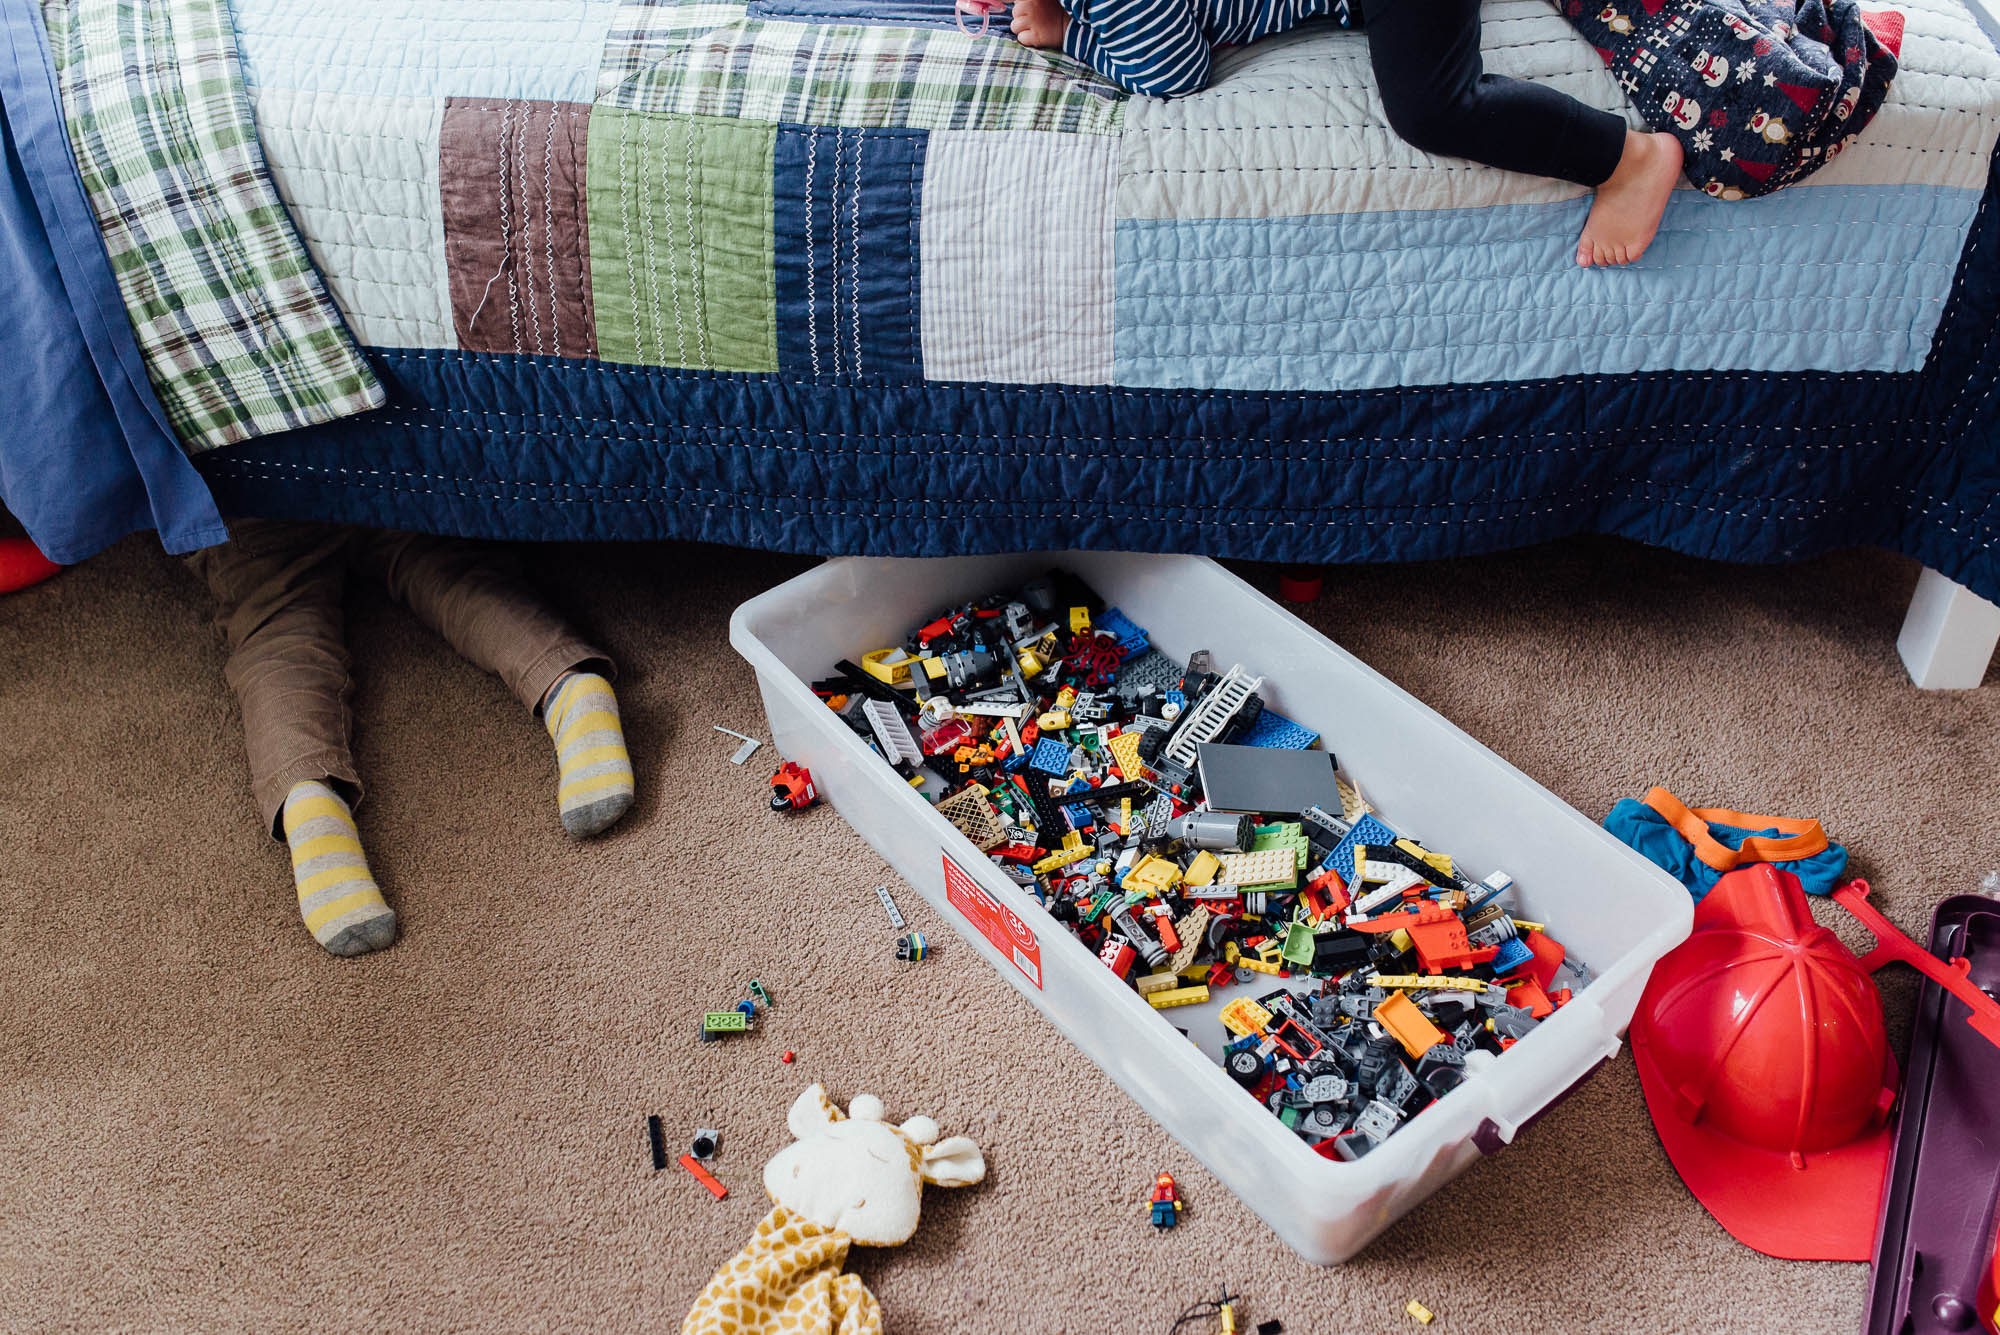 learning_photography_messy_childrens_room-1.jpg